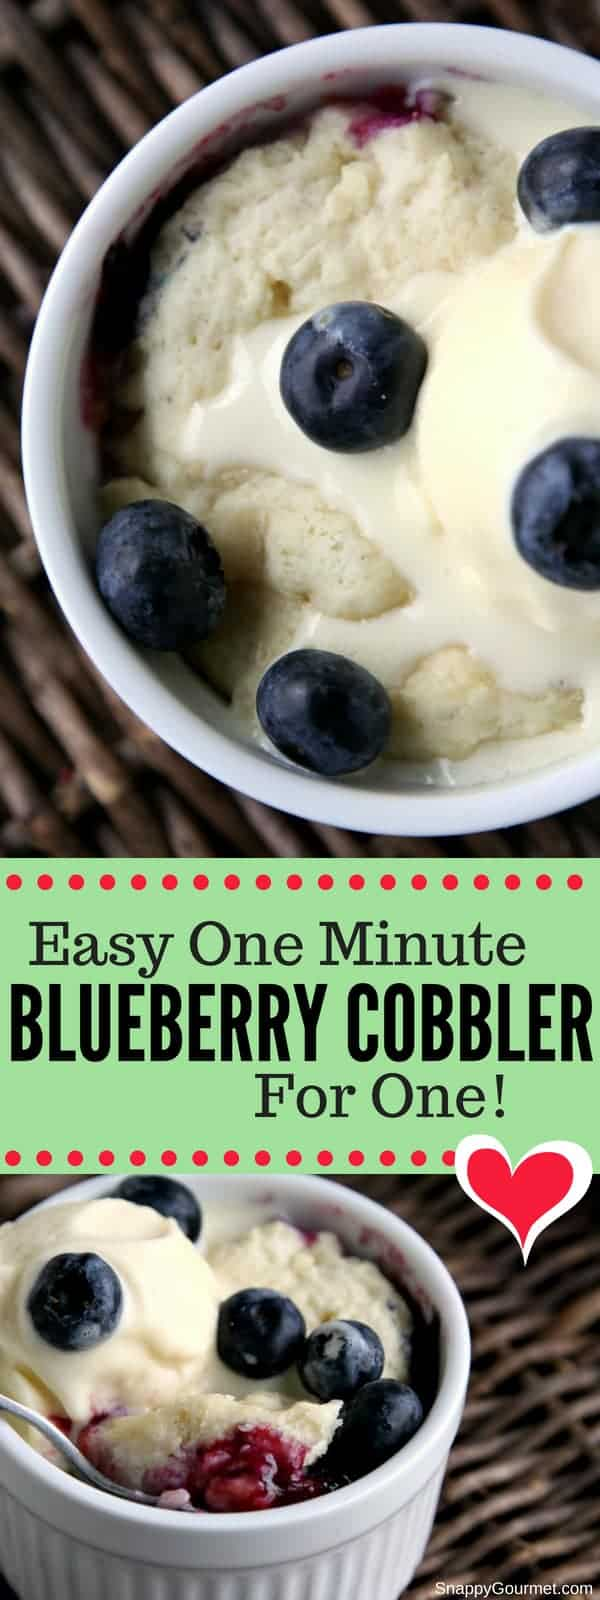 Easy Blueberry Cobbler Recipe - dessert for one ready in one minute